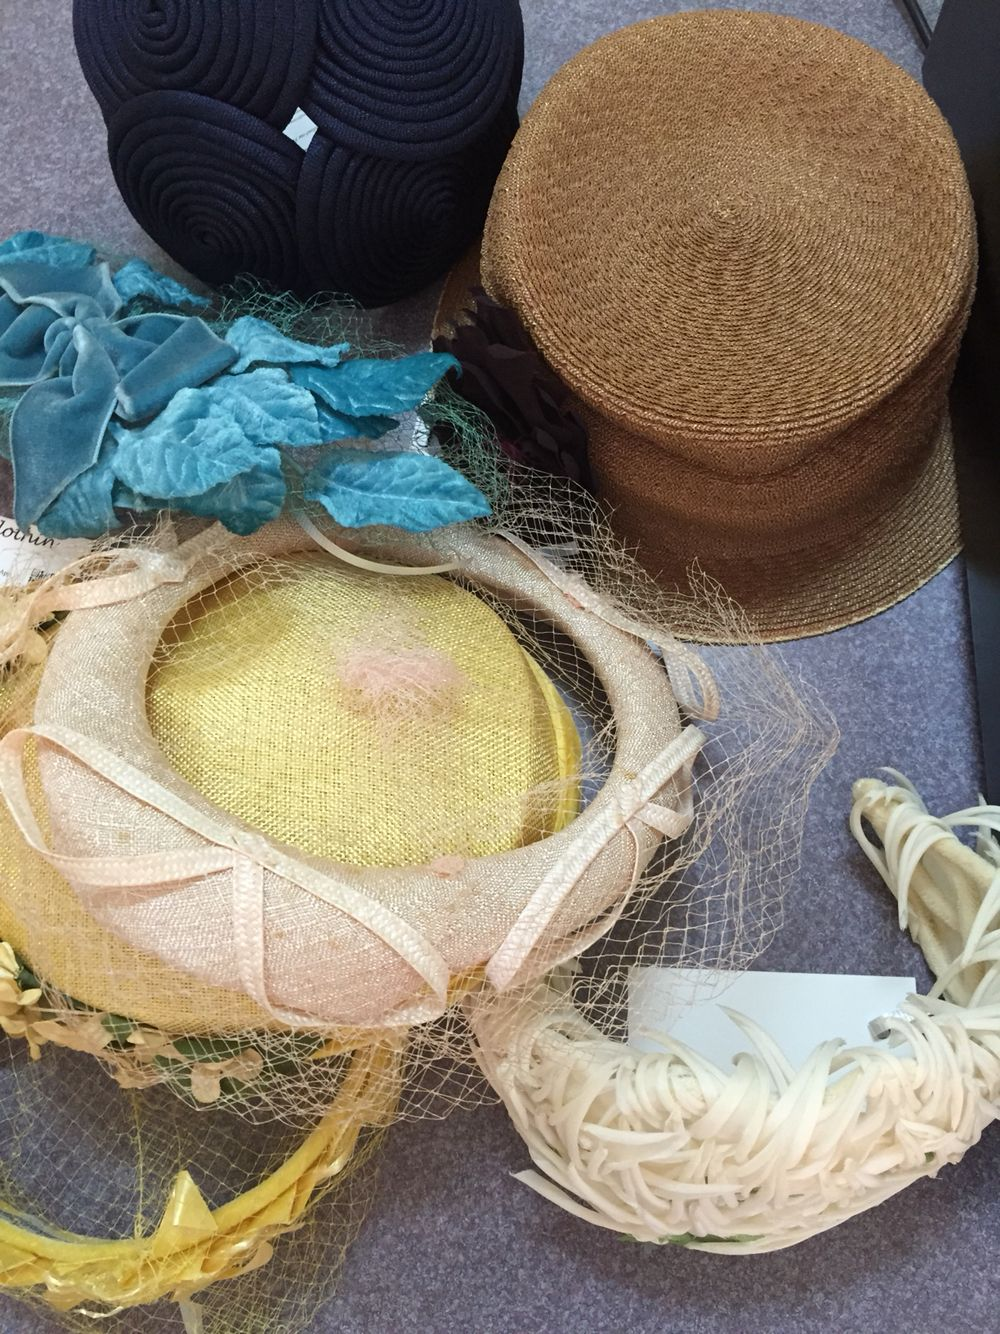 Awesome #vintage #summer #hats just hit the shop we are loving the colors and various designs www.vintageclothin.com #vintage #vintagehat #vintagelove #vintageshop #vintagewear #vintagestore #vintageseller #vintageclothin #vintageforsale #vintageacessories